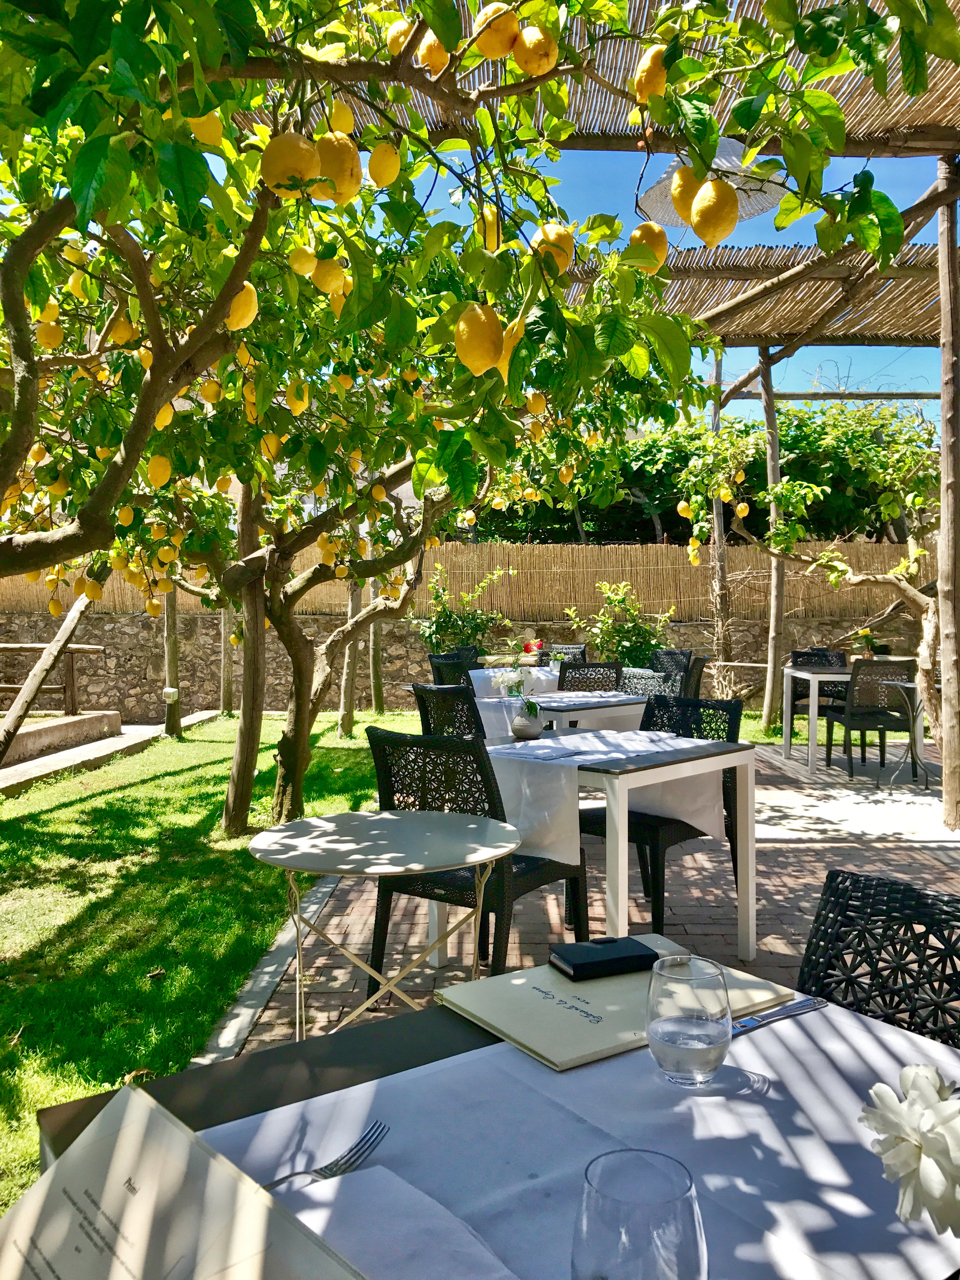 Dining Under a Lemon Grove in Anacapri on the island of Capri